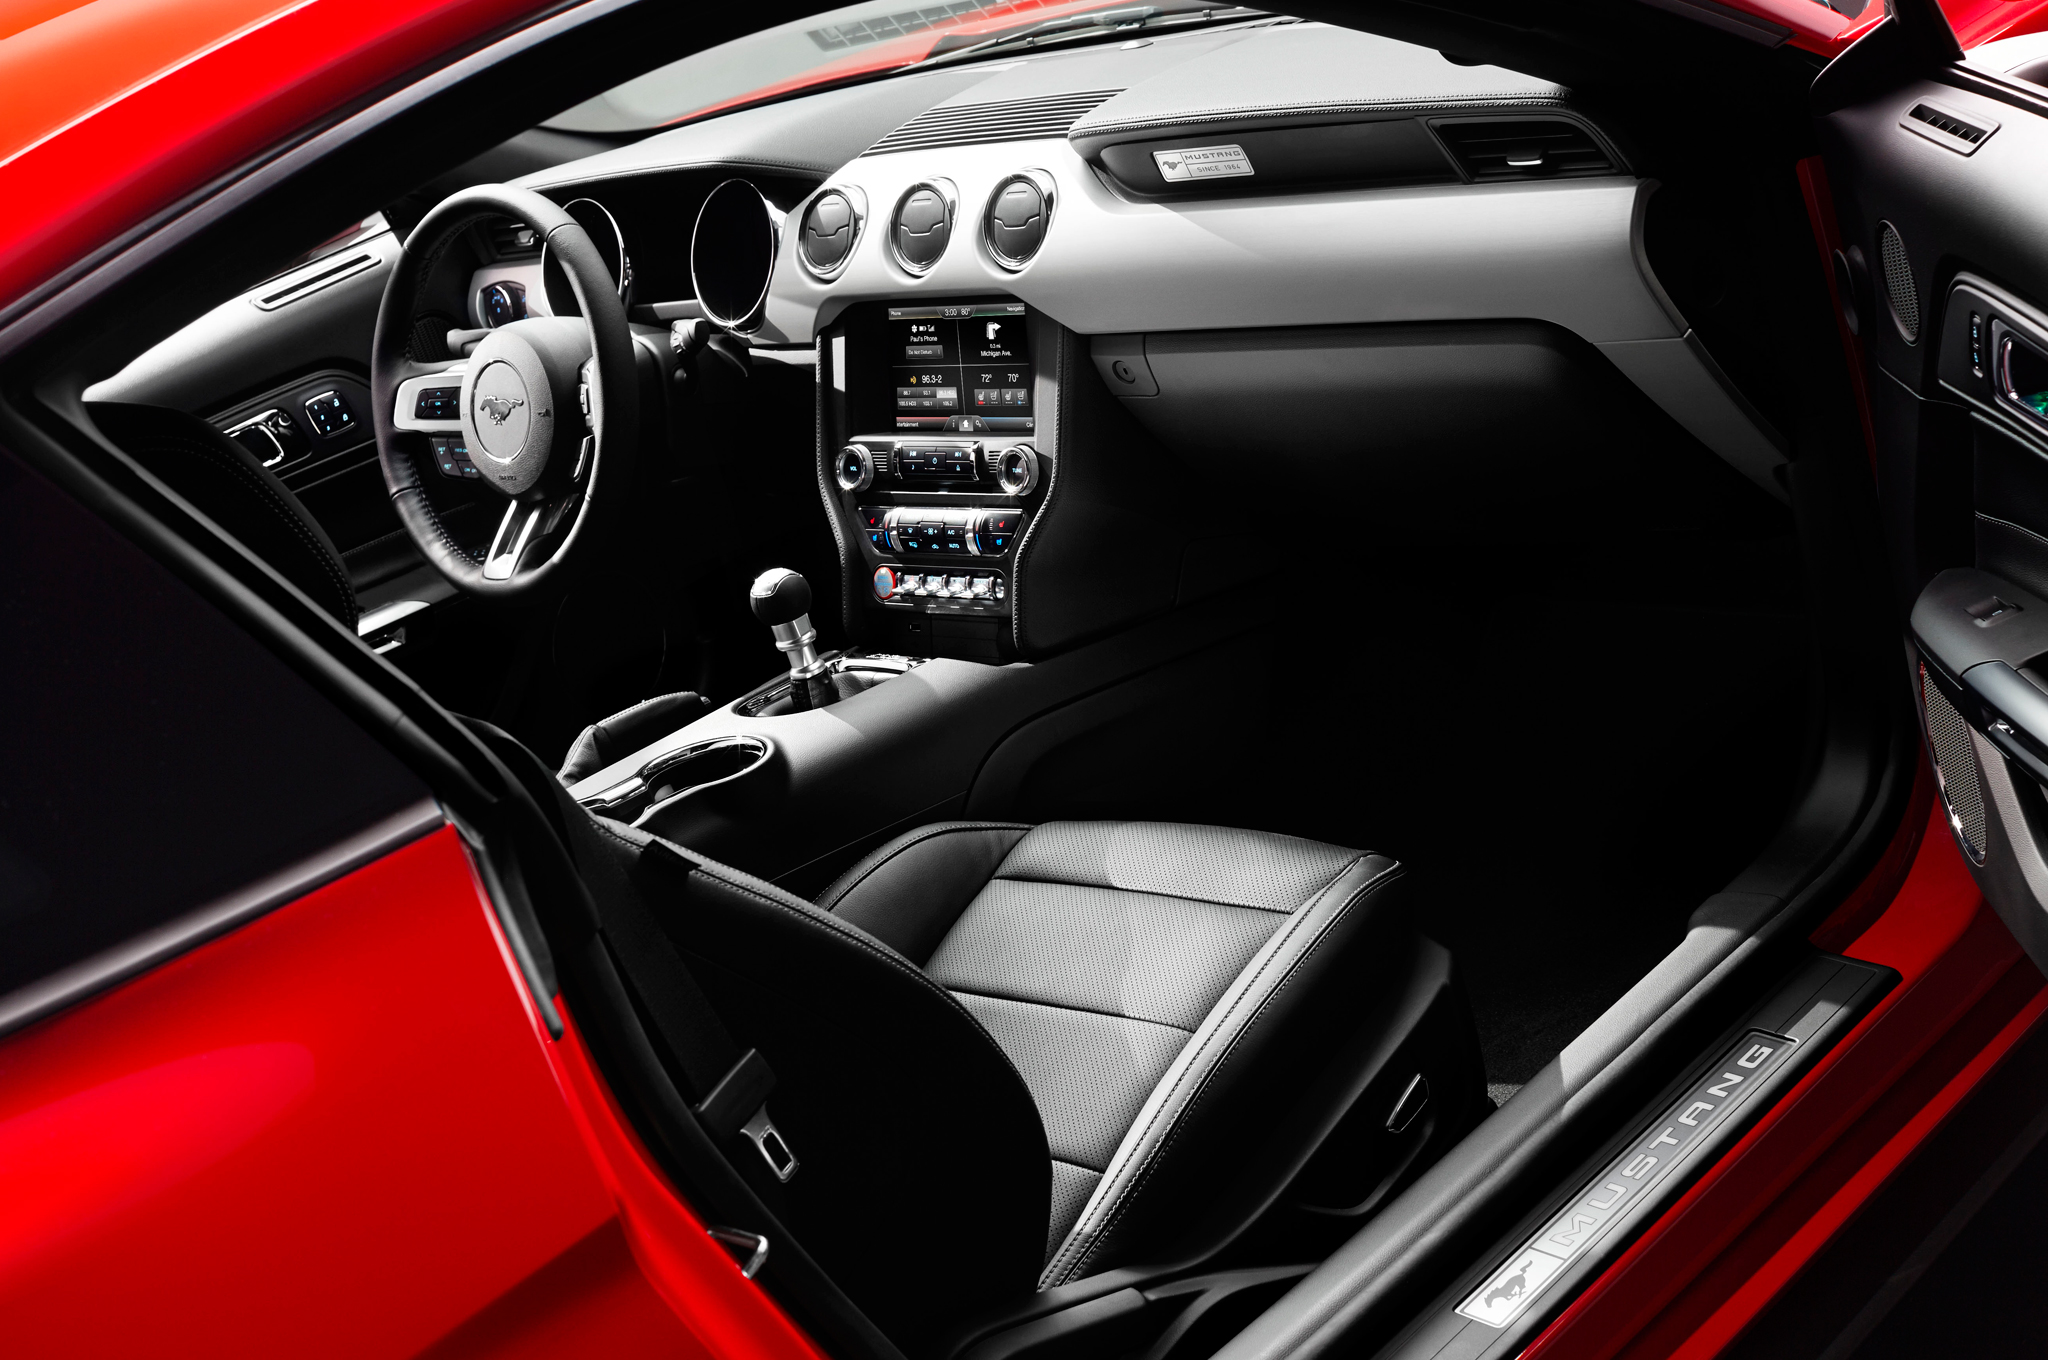 2015 Ford Mustang Interior Closeup